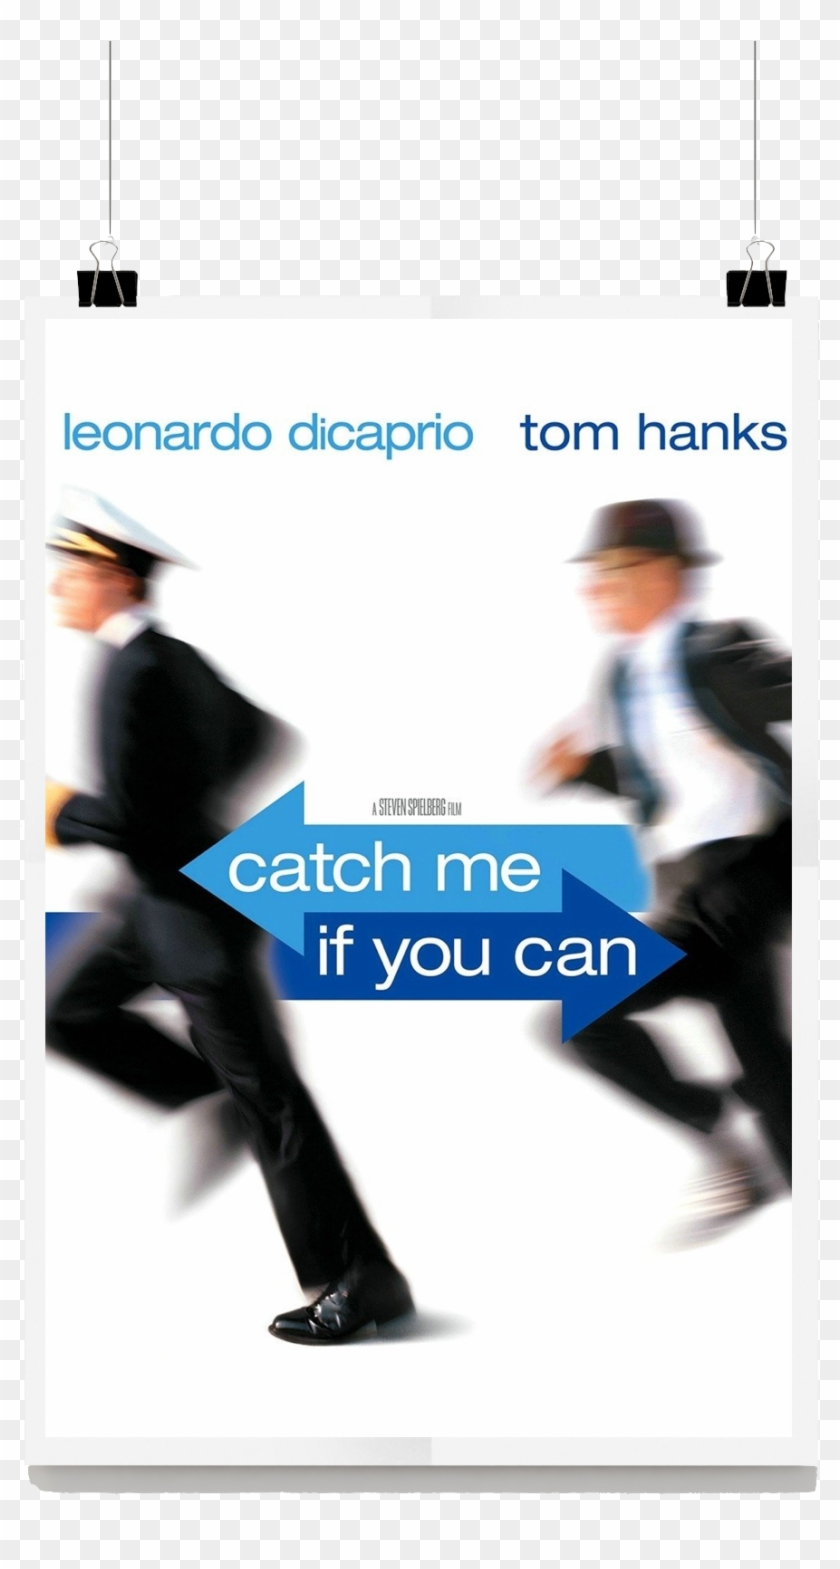 Catch Me If You Can Movie Review Catch Me If You Can 2002 Dvd Hd Png Download 934x1631 2729179 Pngfind